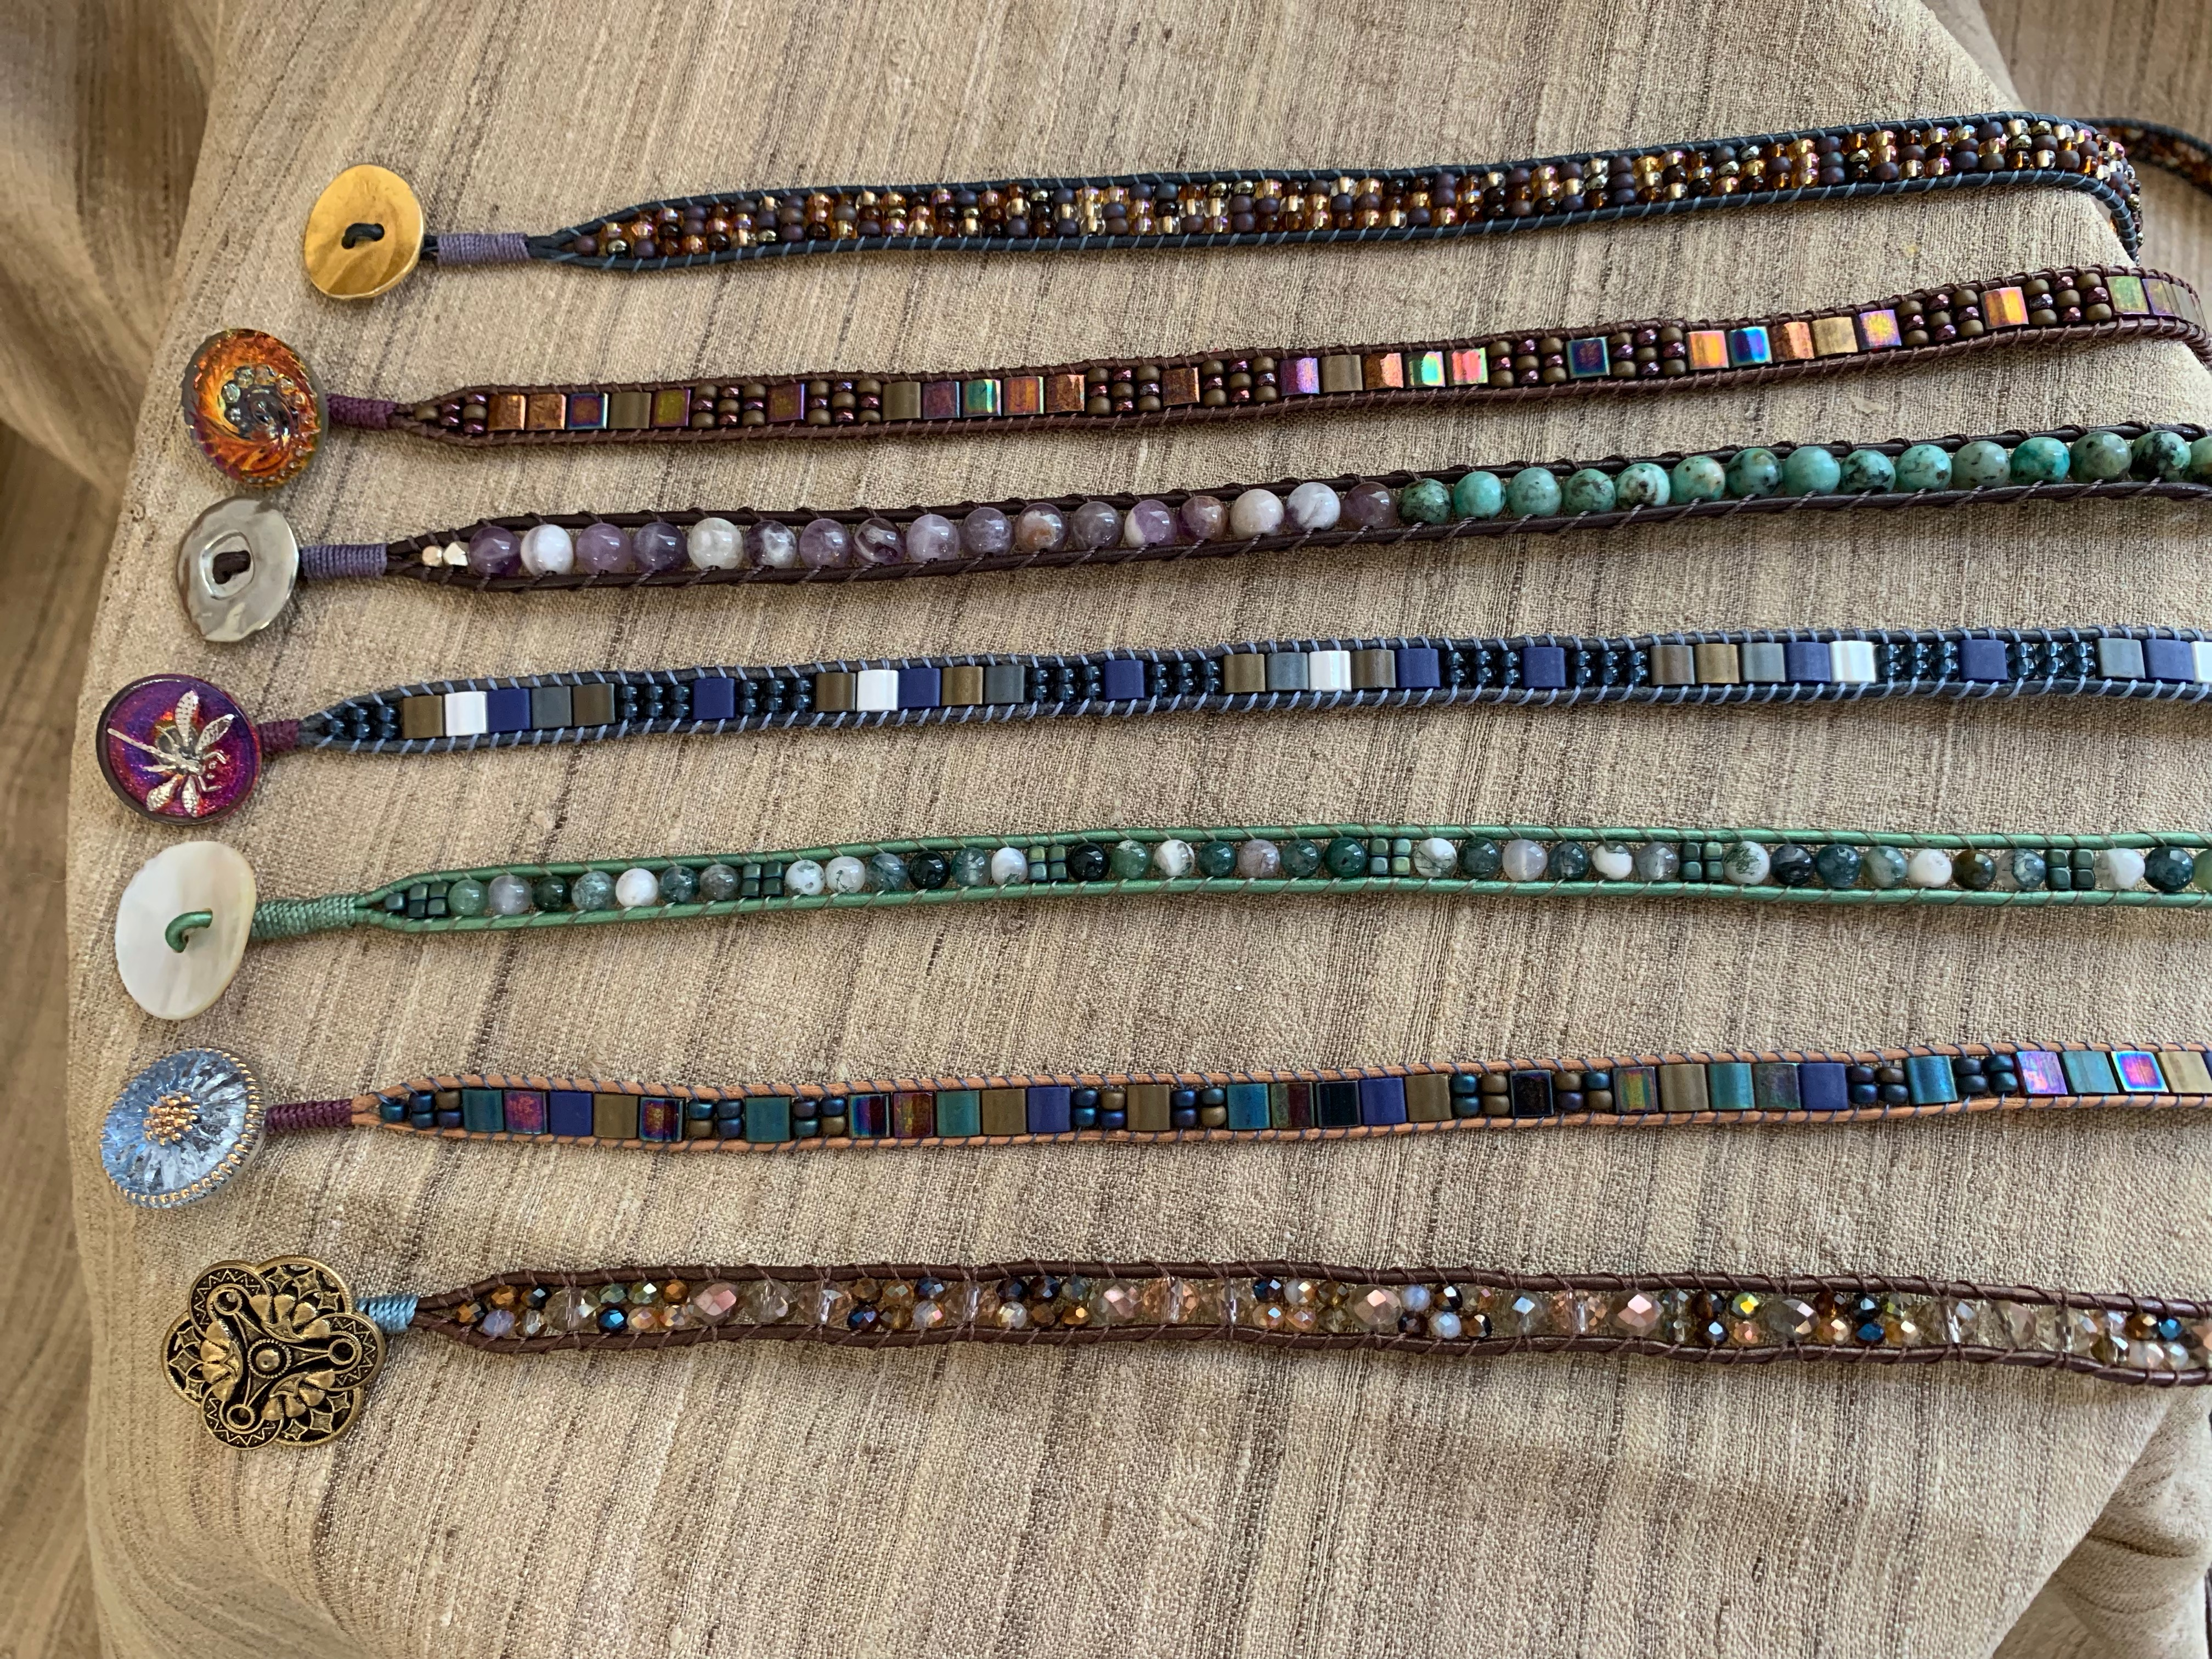 Several handmade beaded bracelets lined up side by side, each with different colors.